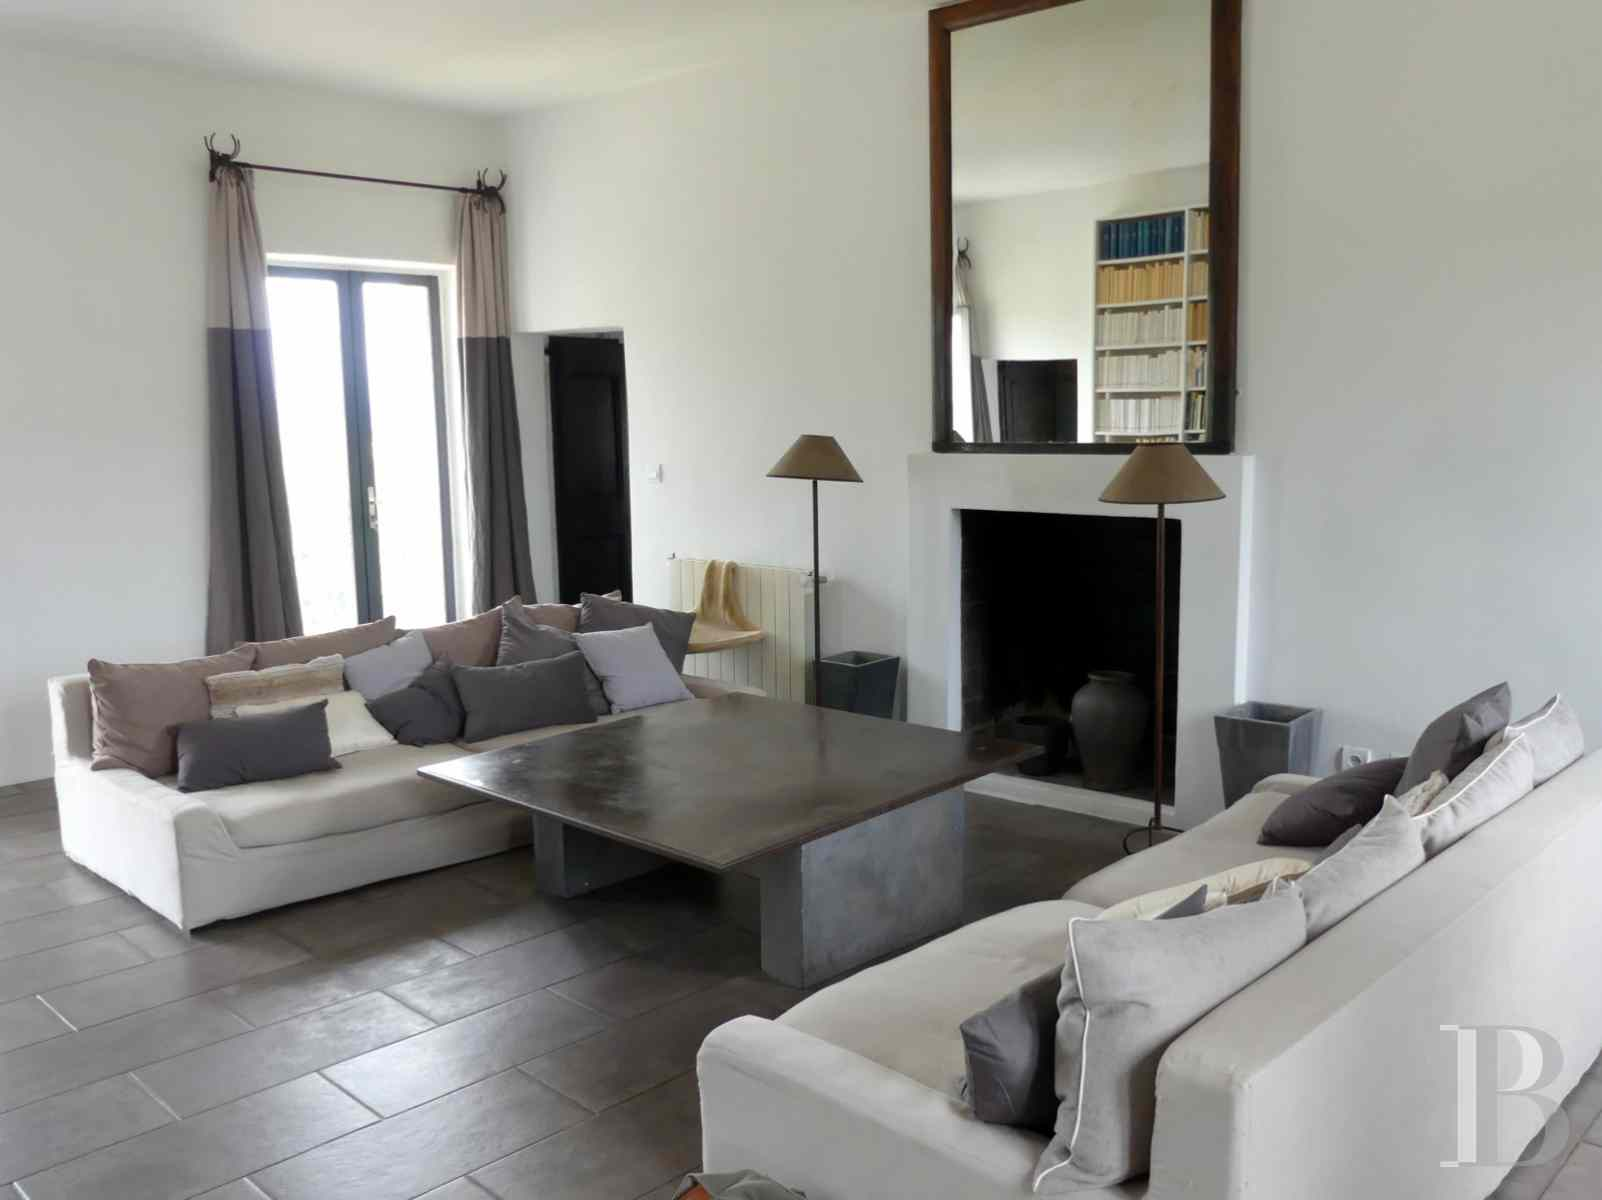 character properties France corse 2 storey - 2 zoom